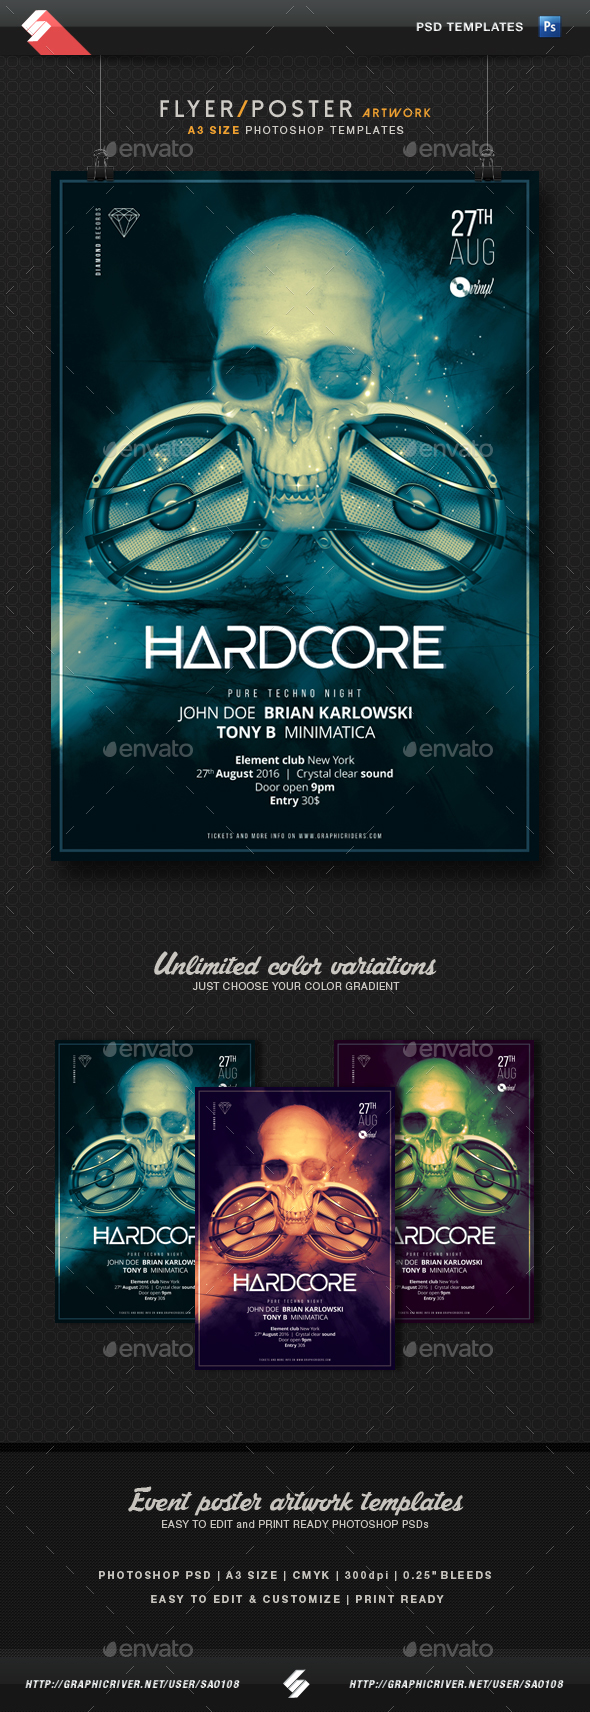 Hardcore - Party Flyer / Poster Template A3 by Sao108 | GraphicRiver